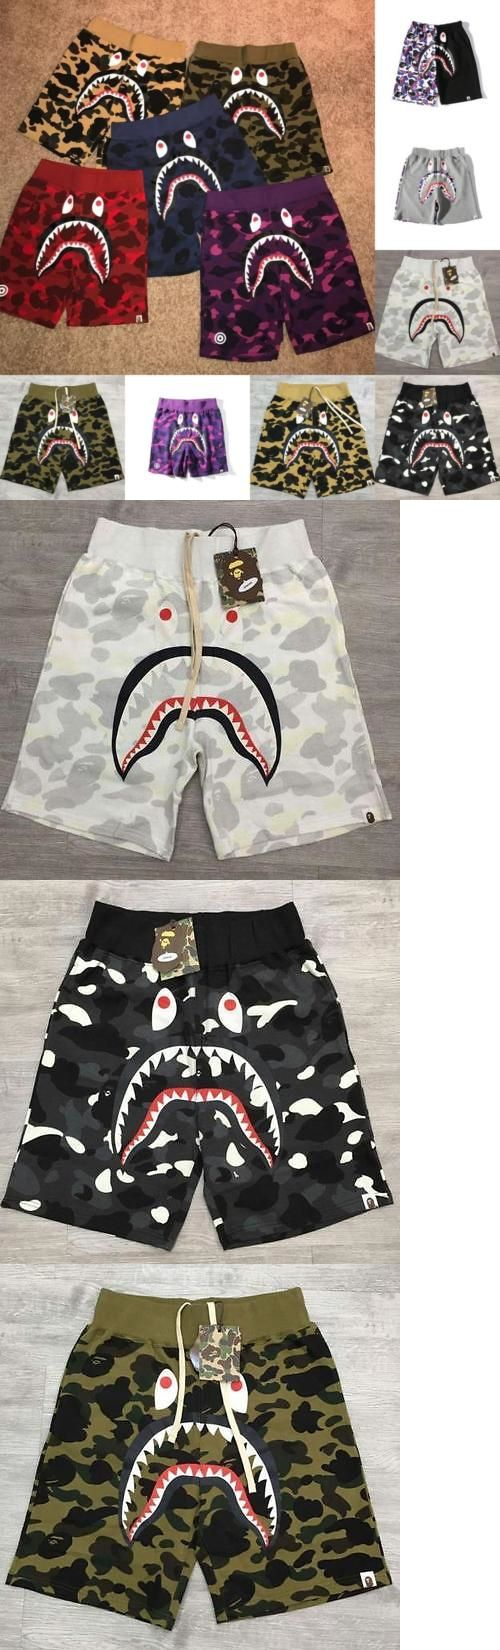 Shirts 183360: 2017 Bape Colorful Pattern Camo Shark Jaw Cotton A Bathing Ape Sports Shorts -> BUY IT NOW ONLY: $39.99 on eBay!